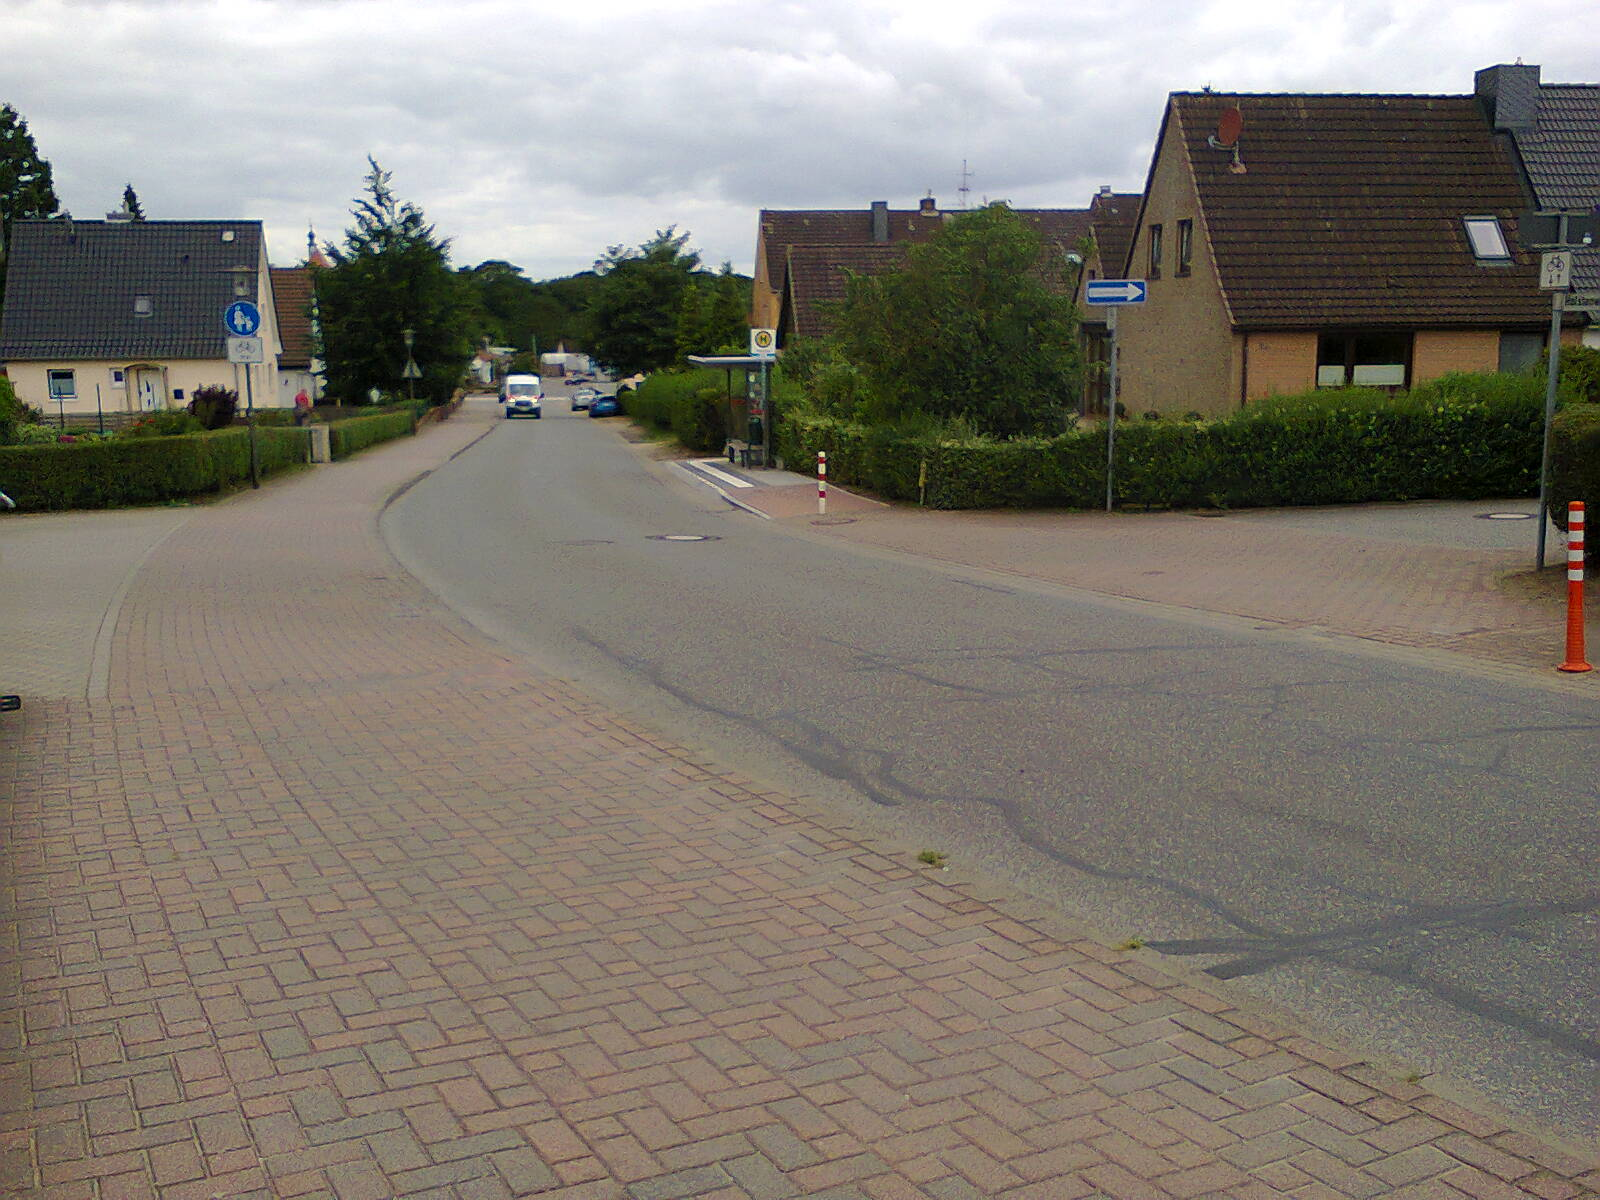 A Residential Road in Germany